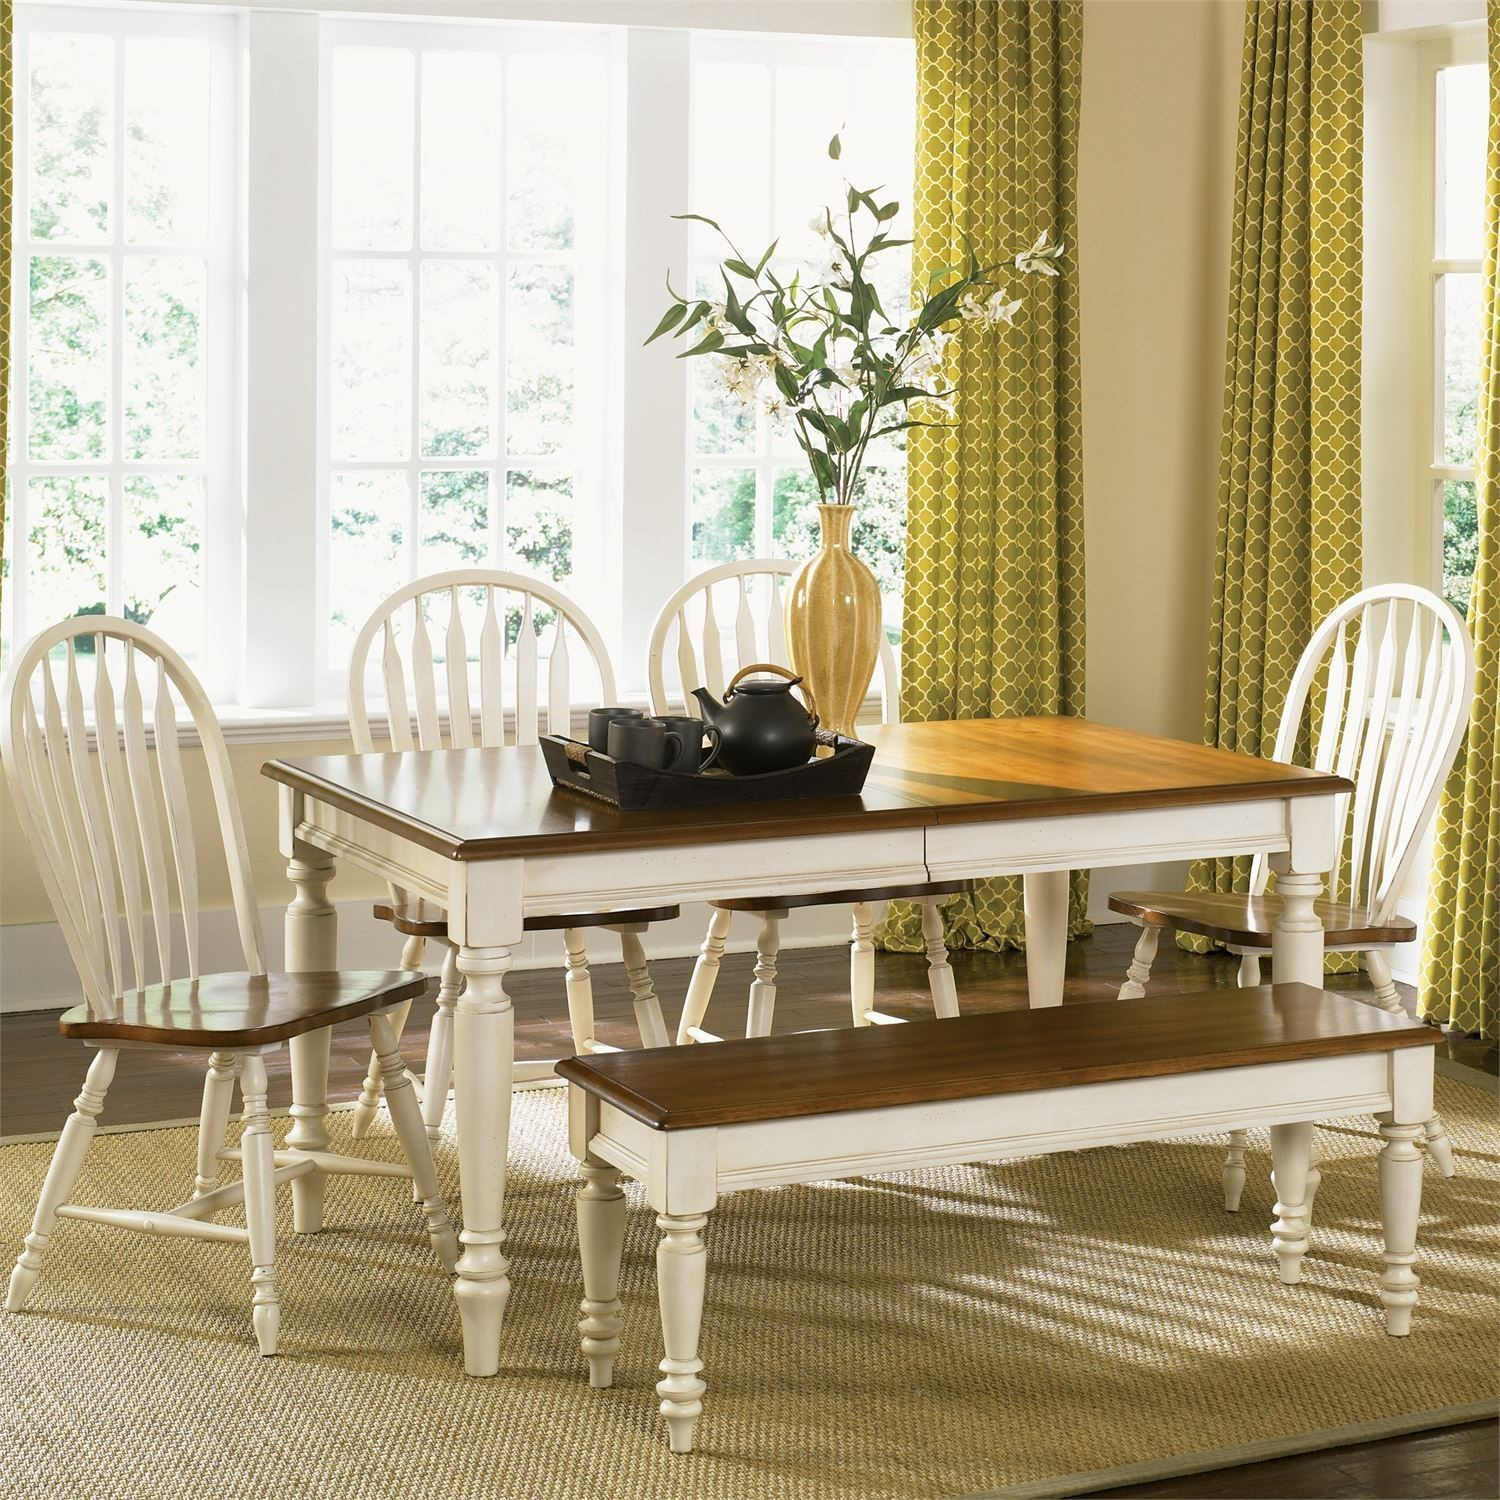 Liberty Furniture Low Country Sand Dining Bench At Hayneedle: Low Country Sand Dining Room Set From Liberty (79-T3876